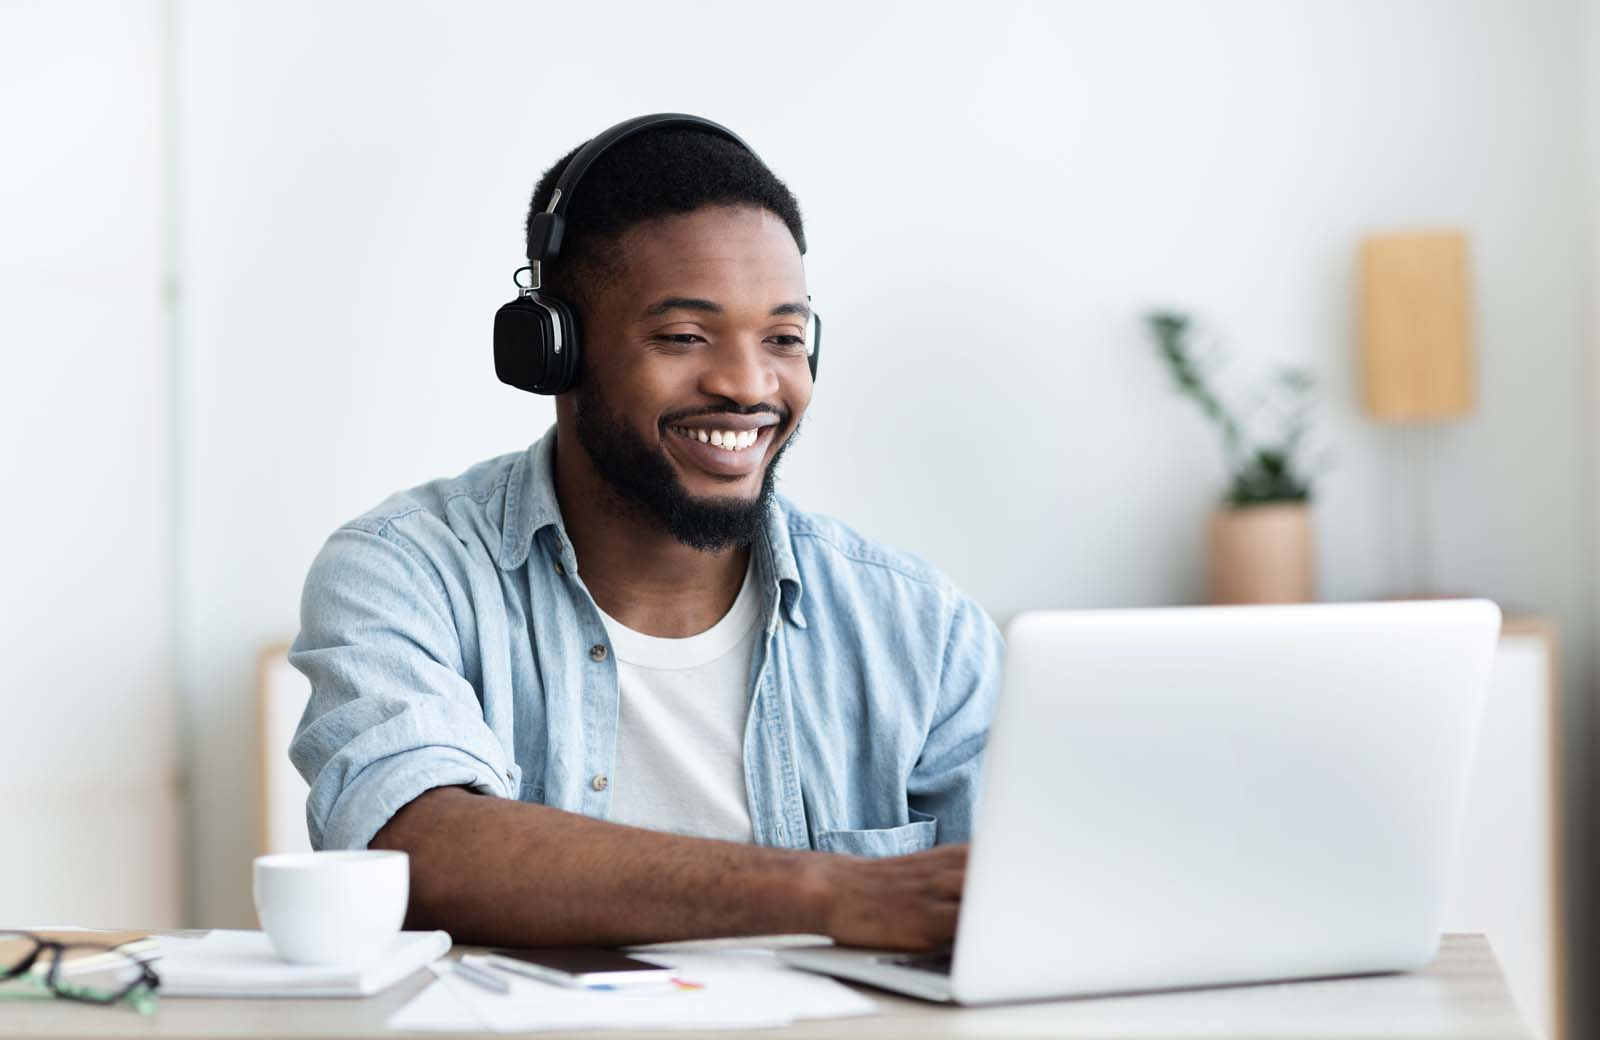 smiling freelance working with headphones and laptop